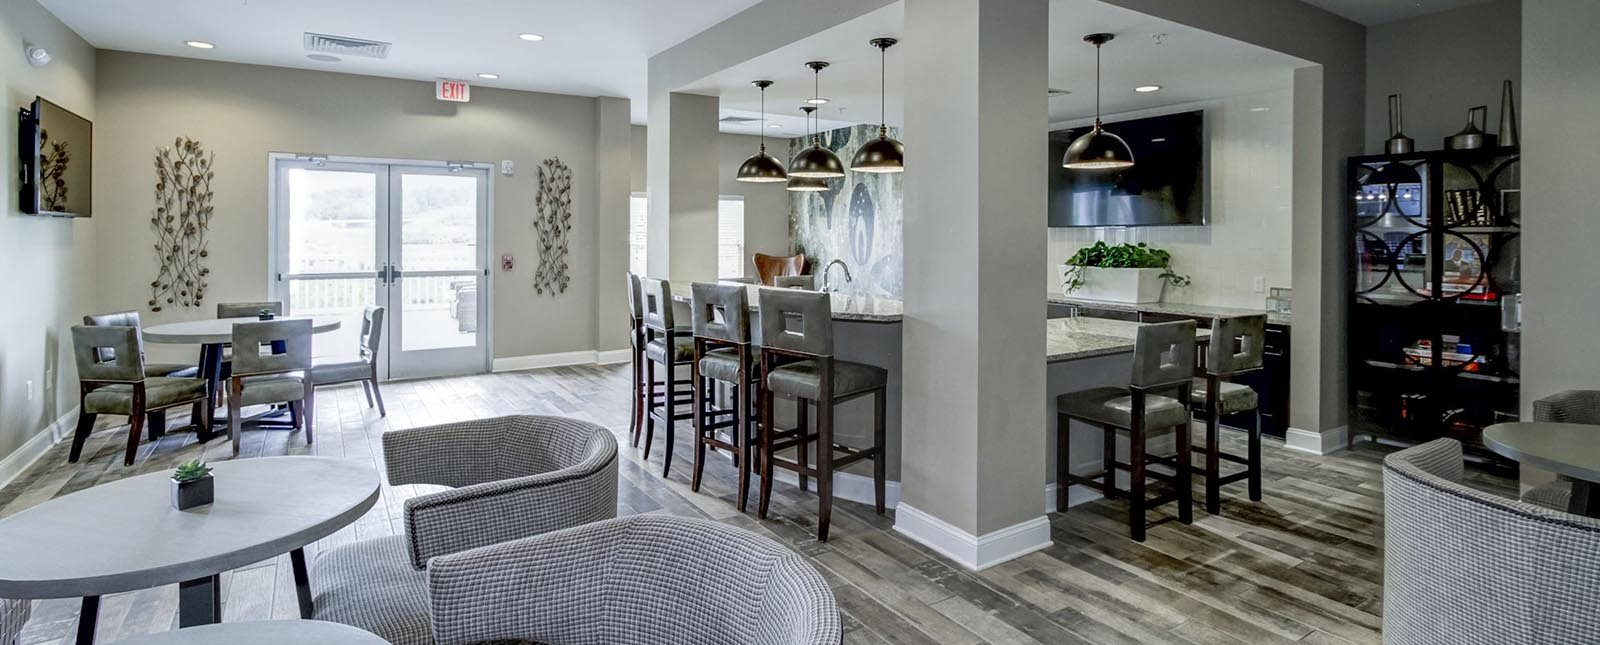 Expansive Resident Lounge of The Haven luxury apartments in Malvern, PA